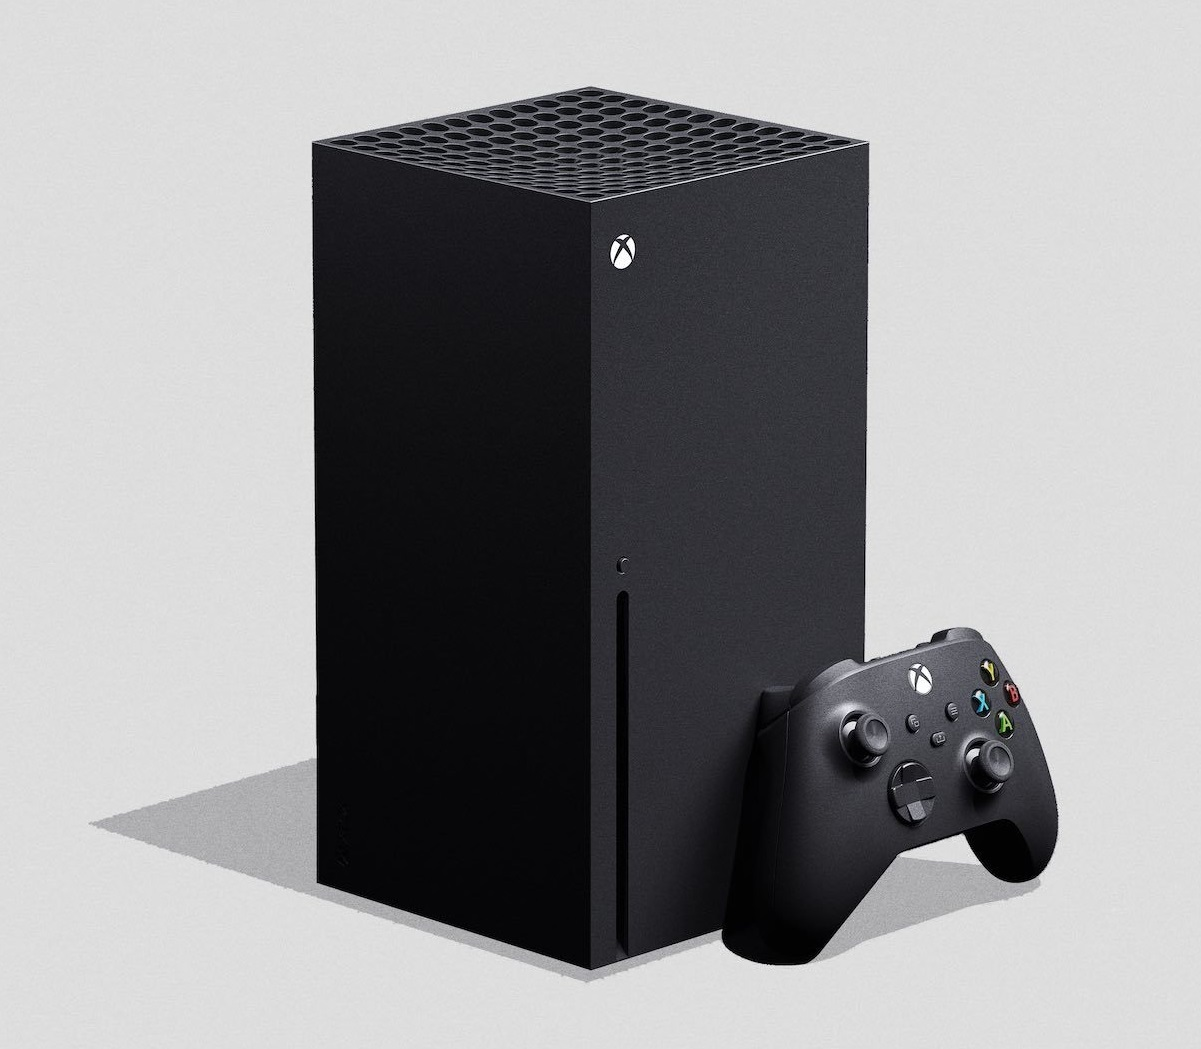 Xbox Series X console for Xbox Series X image